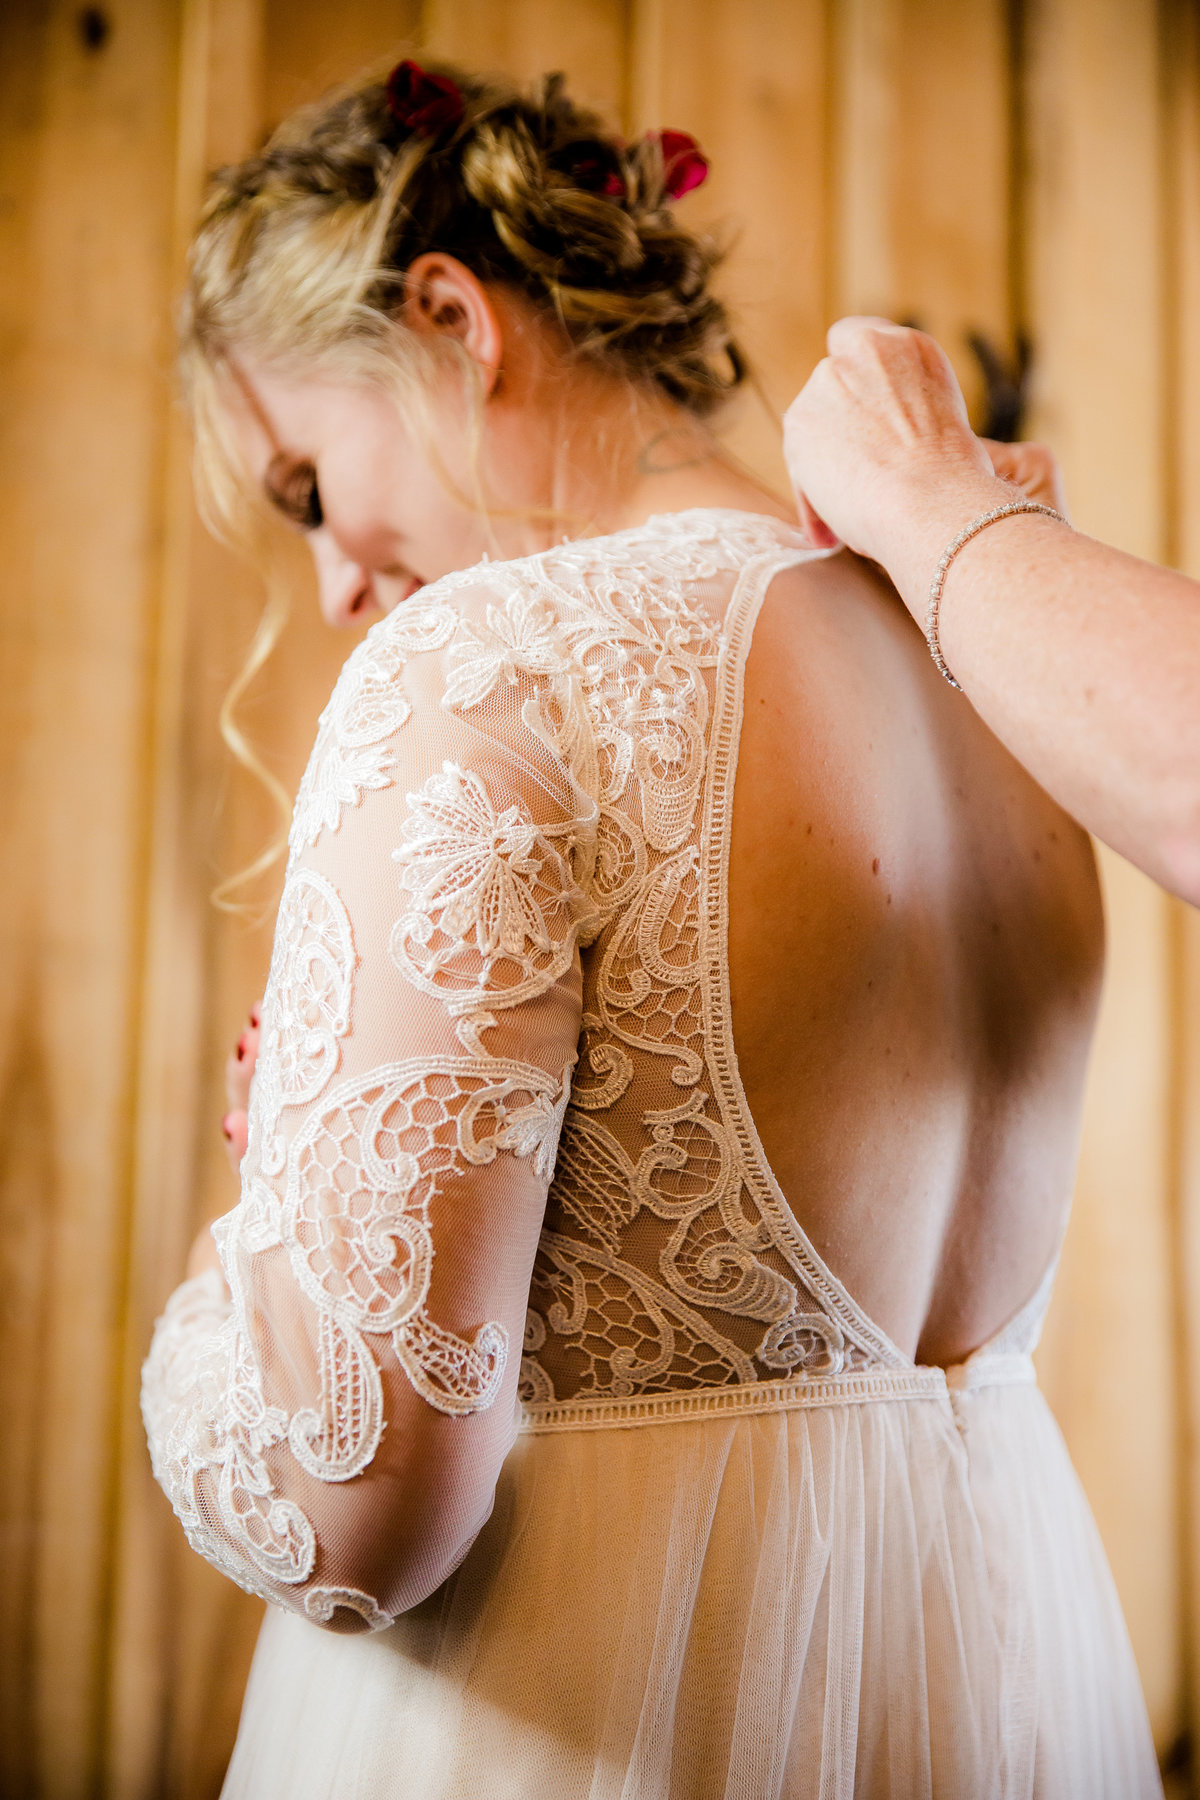 Cactus Creek Barn - Dickson Wedding - Dickson TN - Outdoor Weddings - Outdoor Wedding - Nashville Wedding - Nashville Weddings - Nashville Wedding Photographer - Nashville Wedding Photographers095